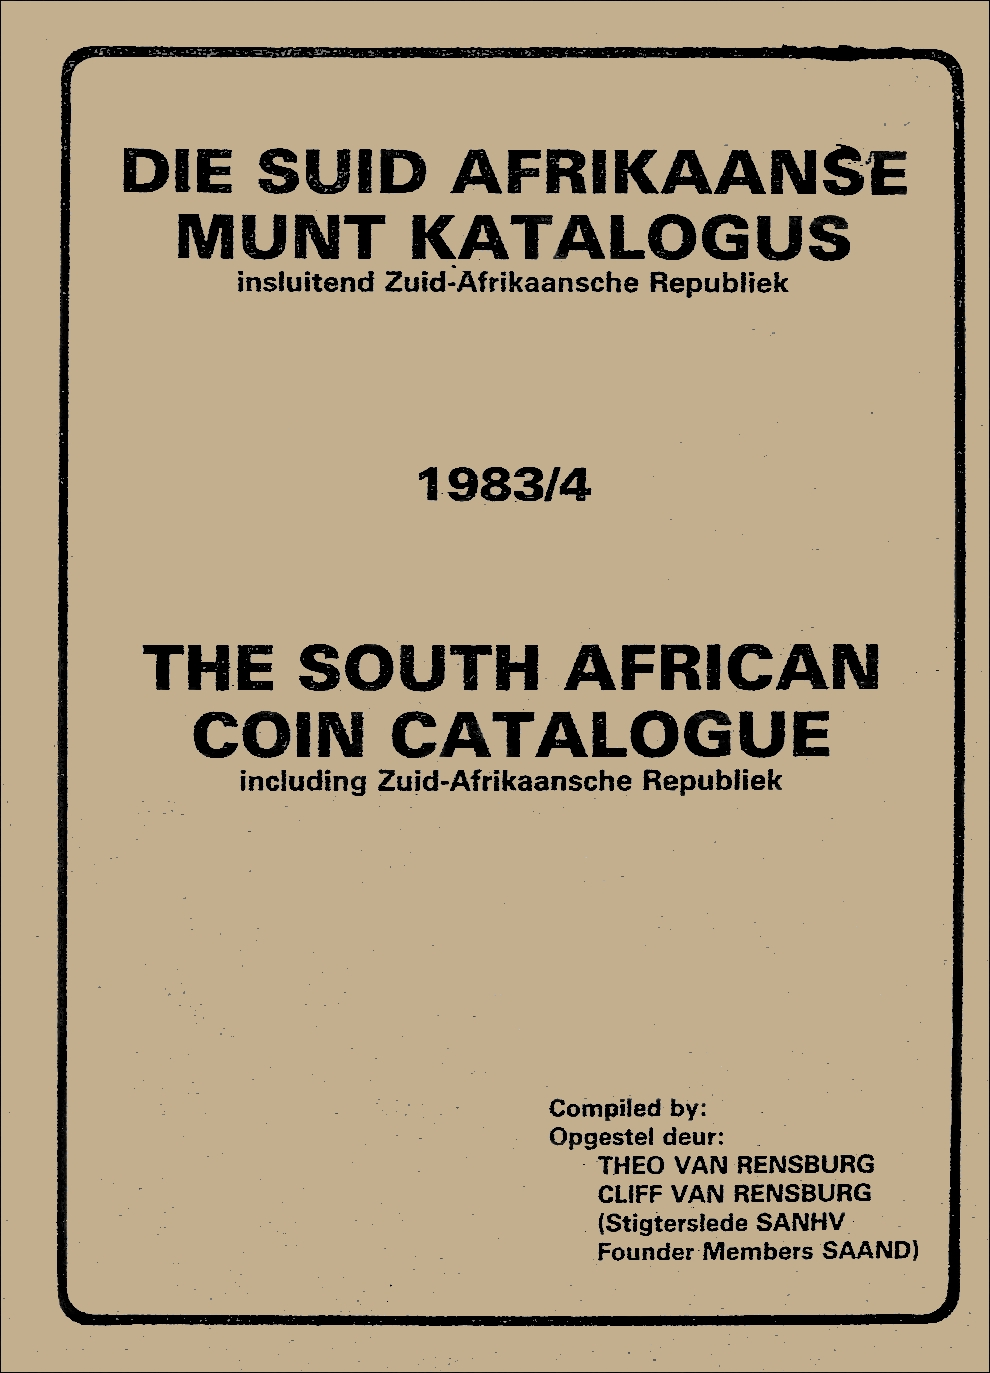 Randburg Coin Catalogue 1983 to 1984